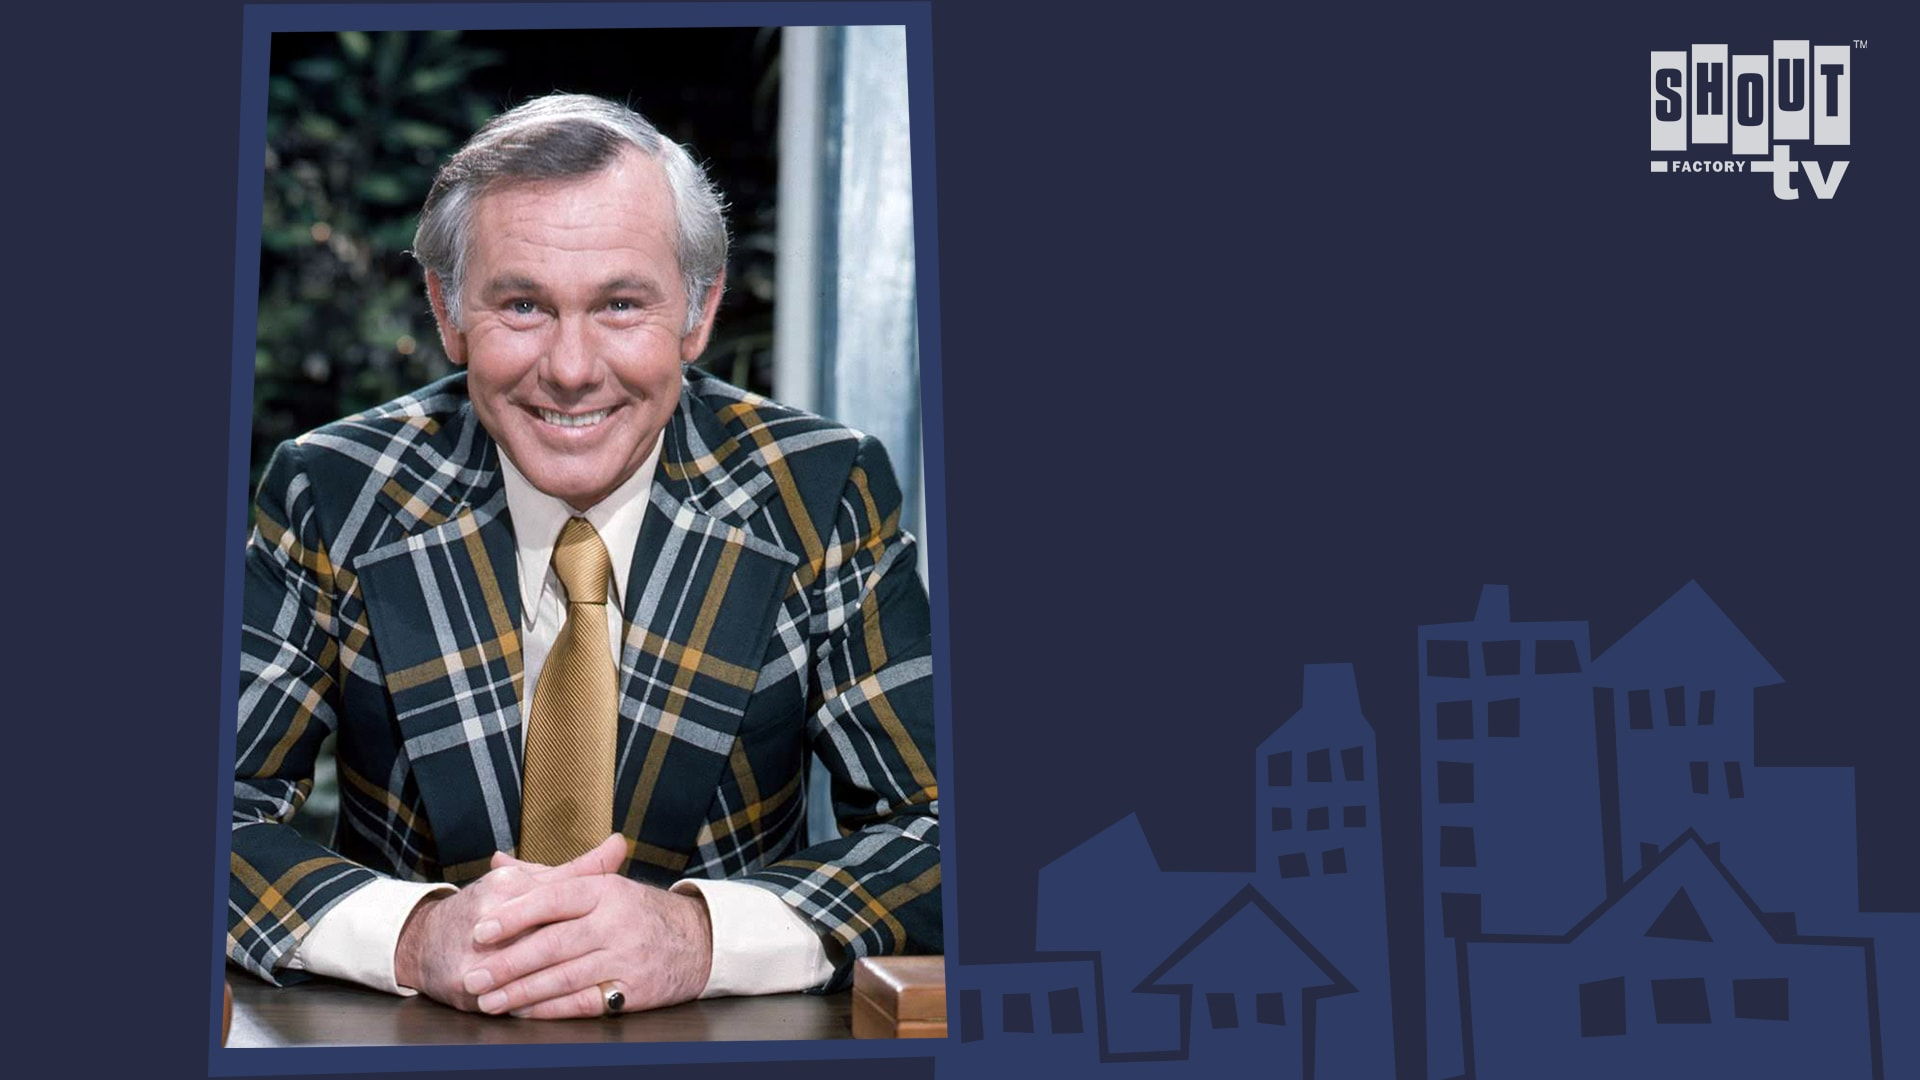 The Johnny Carson Show: Comic Legends Of The '60s - Buddy Hackett (3/30/73)